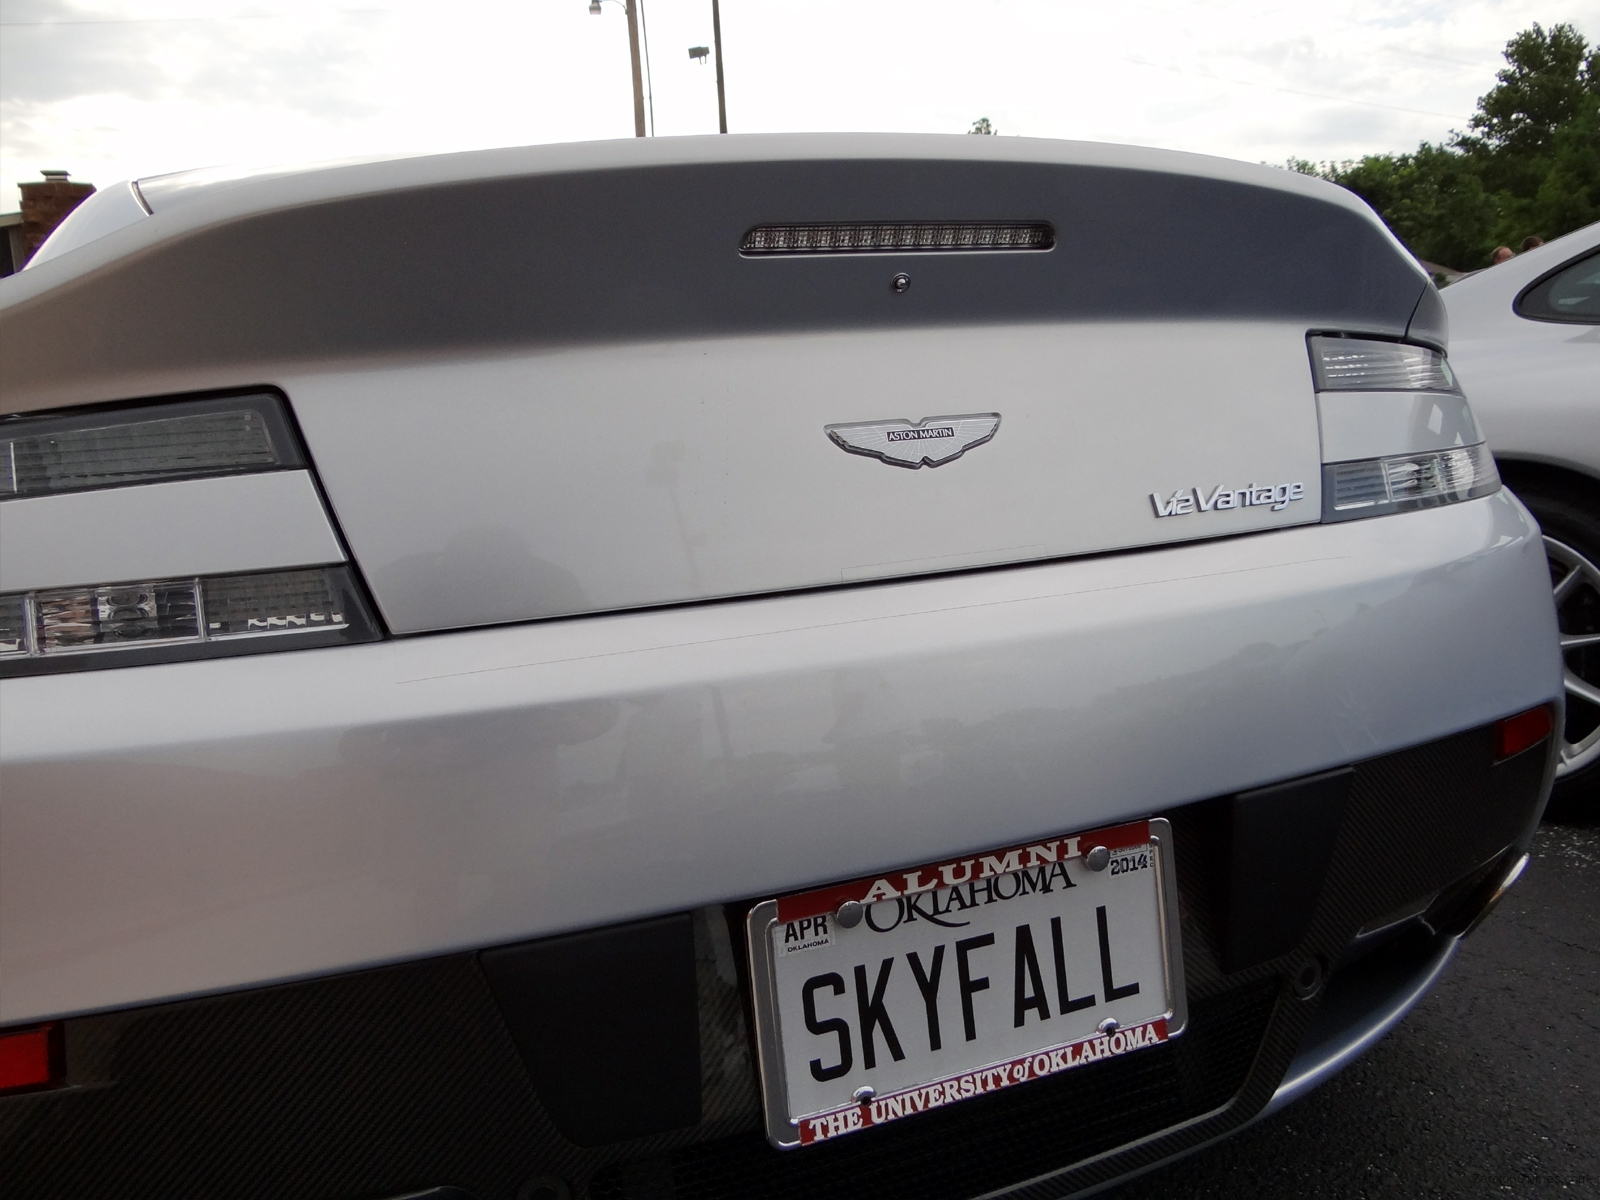 clever-license-plates.jpg